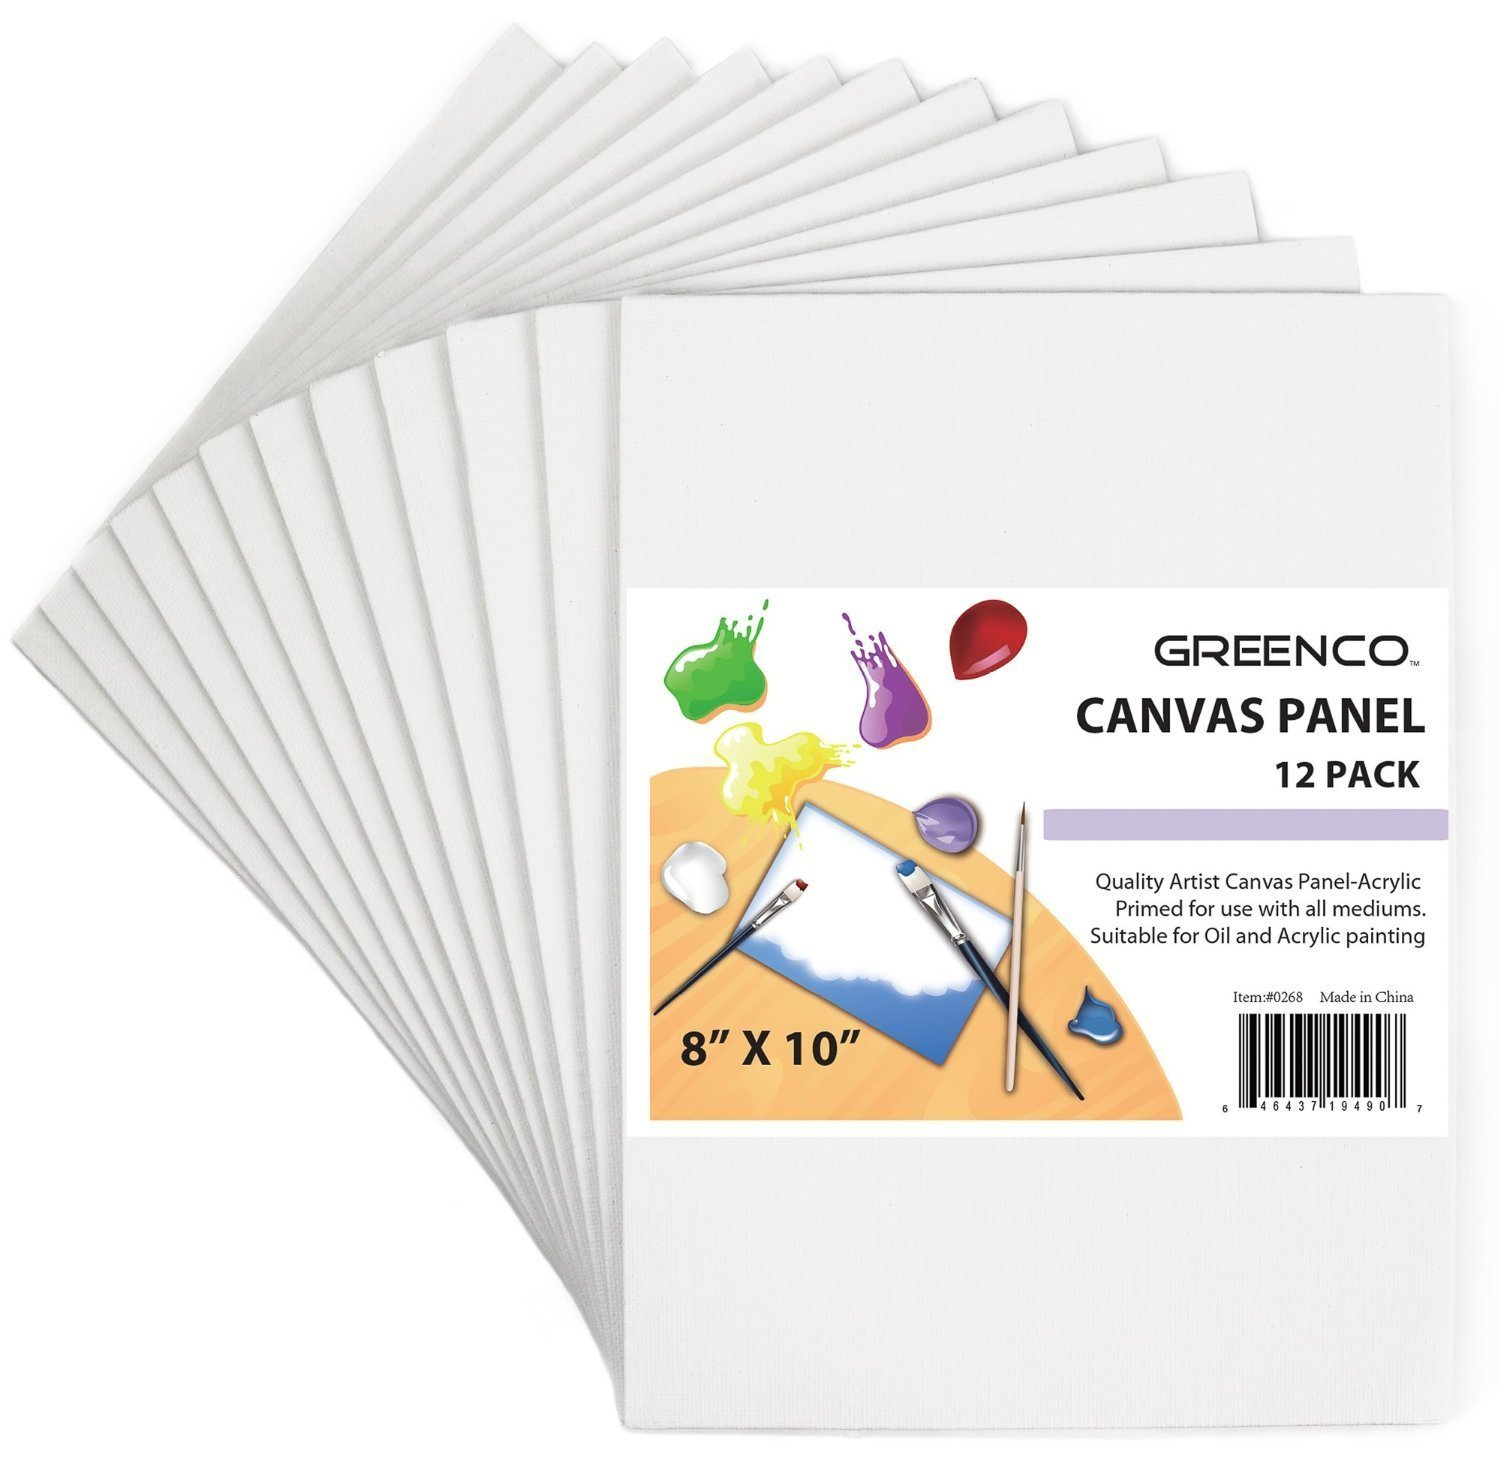 Greenco Professional Quality Canvas Panel 8 x 10 inch -Pack of 12 by Greenco